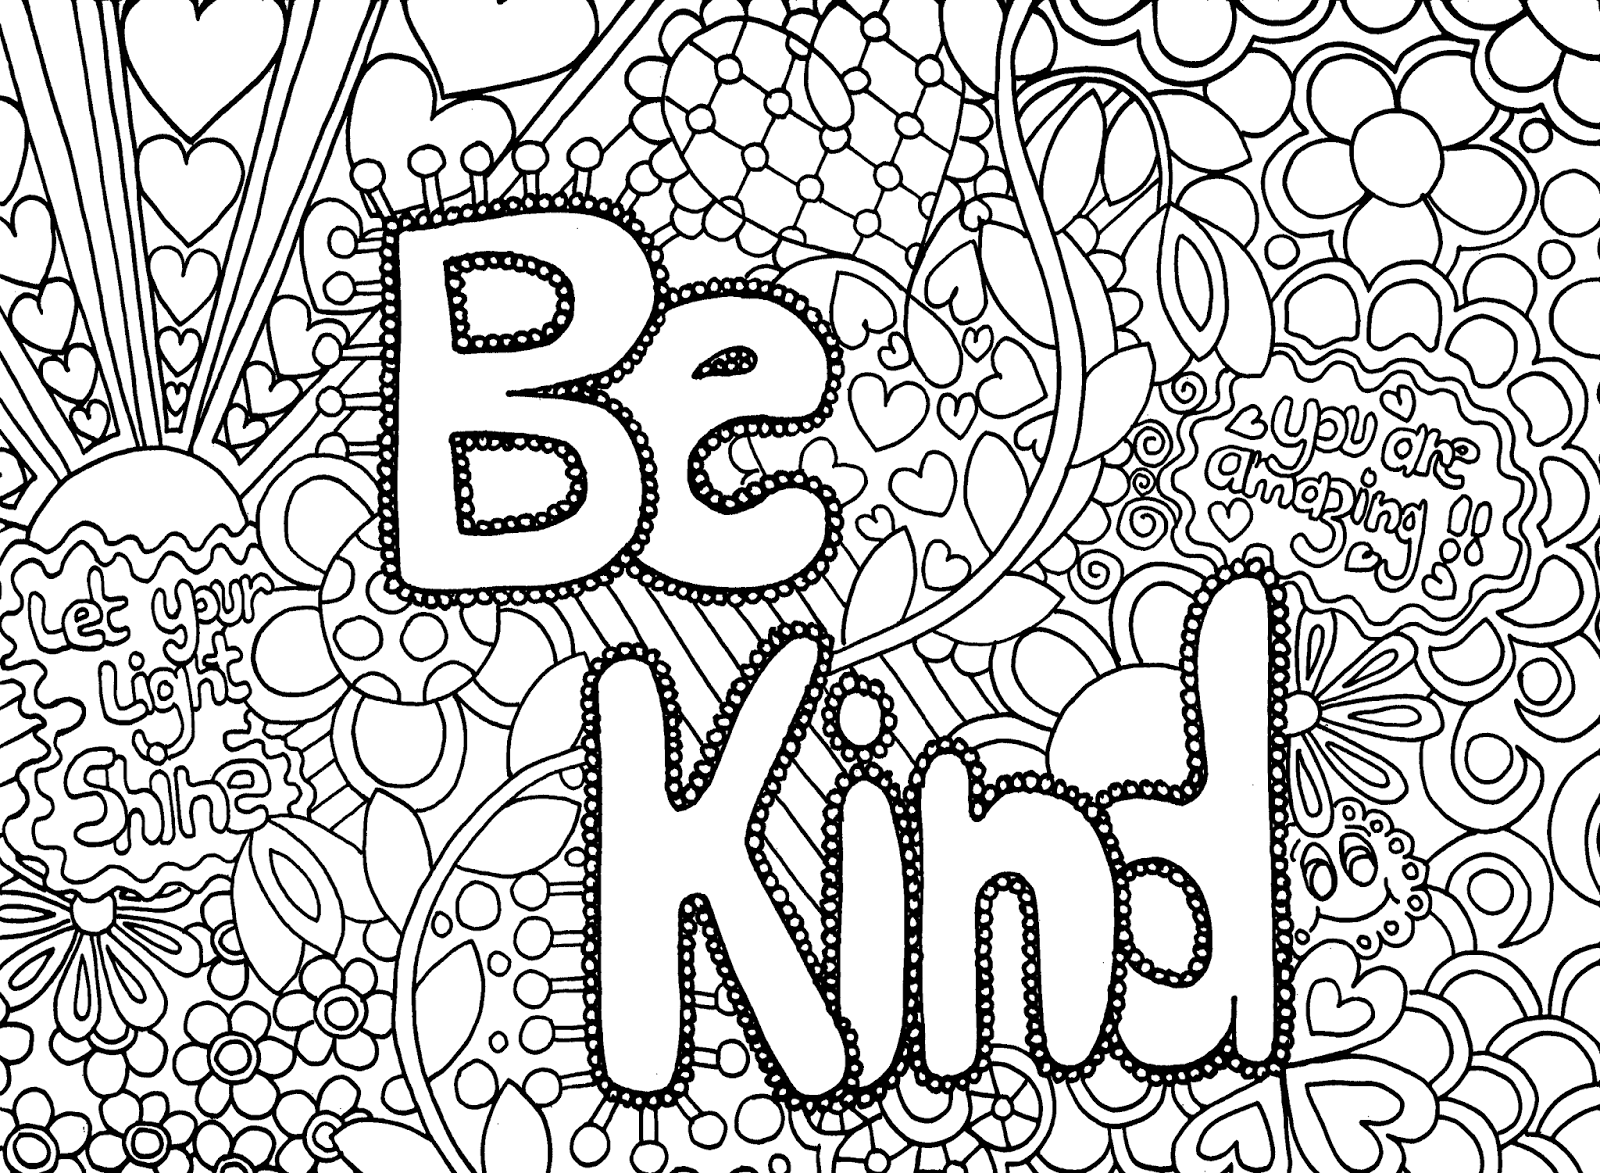 Free coloring pages for adults - Free Coloring Pages For Adults To Print Image 8